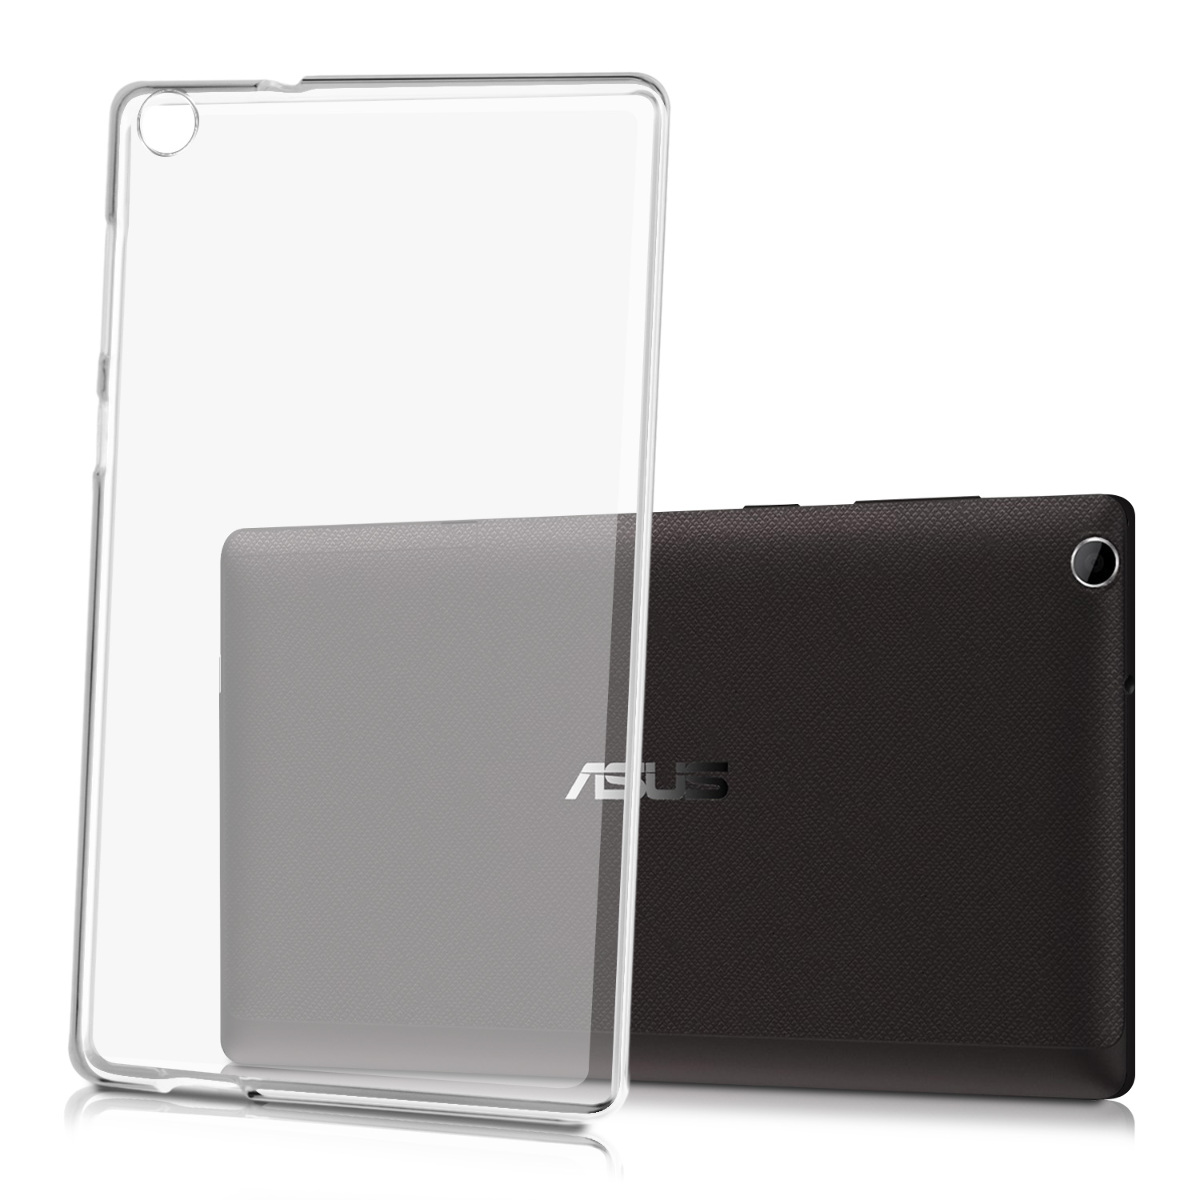 kwmobile TPU SILICONE COVER FOR ASUS ZENPAD C 7 0 (Z170C / Z170CG) SOFT CASE